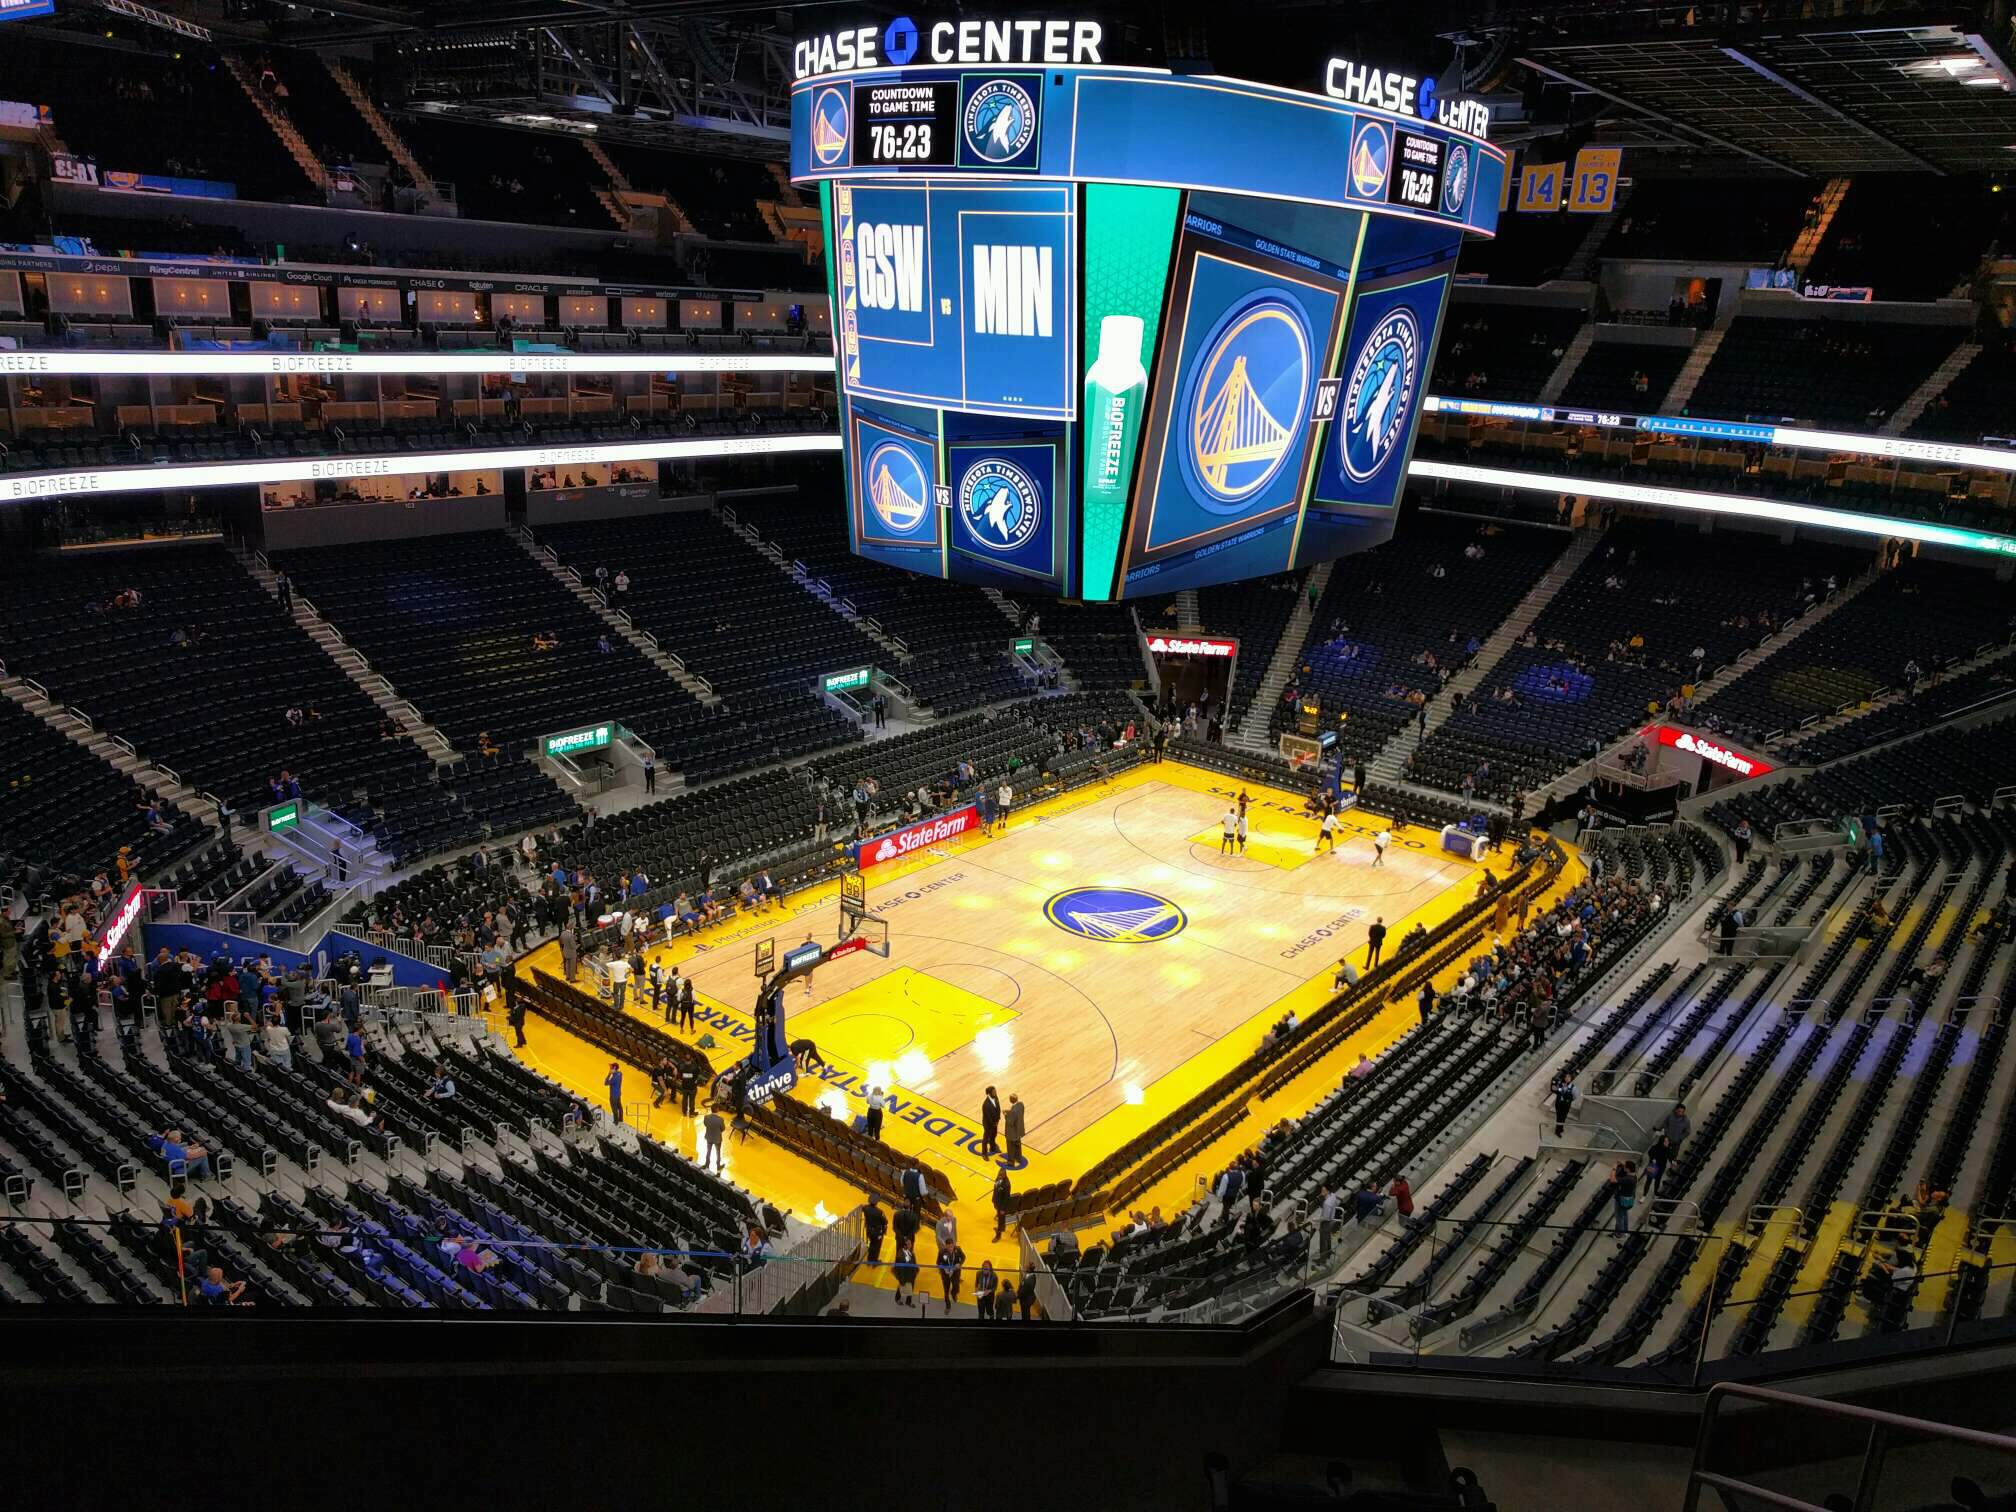 Chase Center Section 225 Row 7 Seat 4